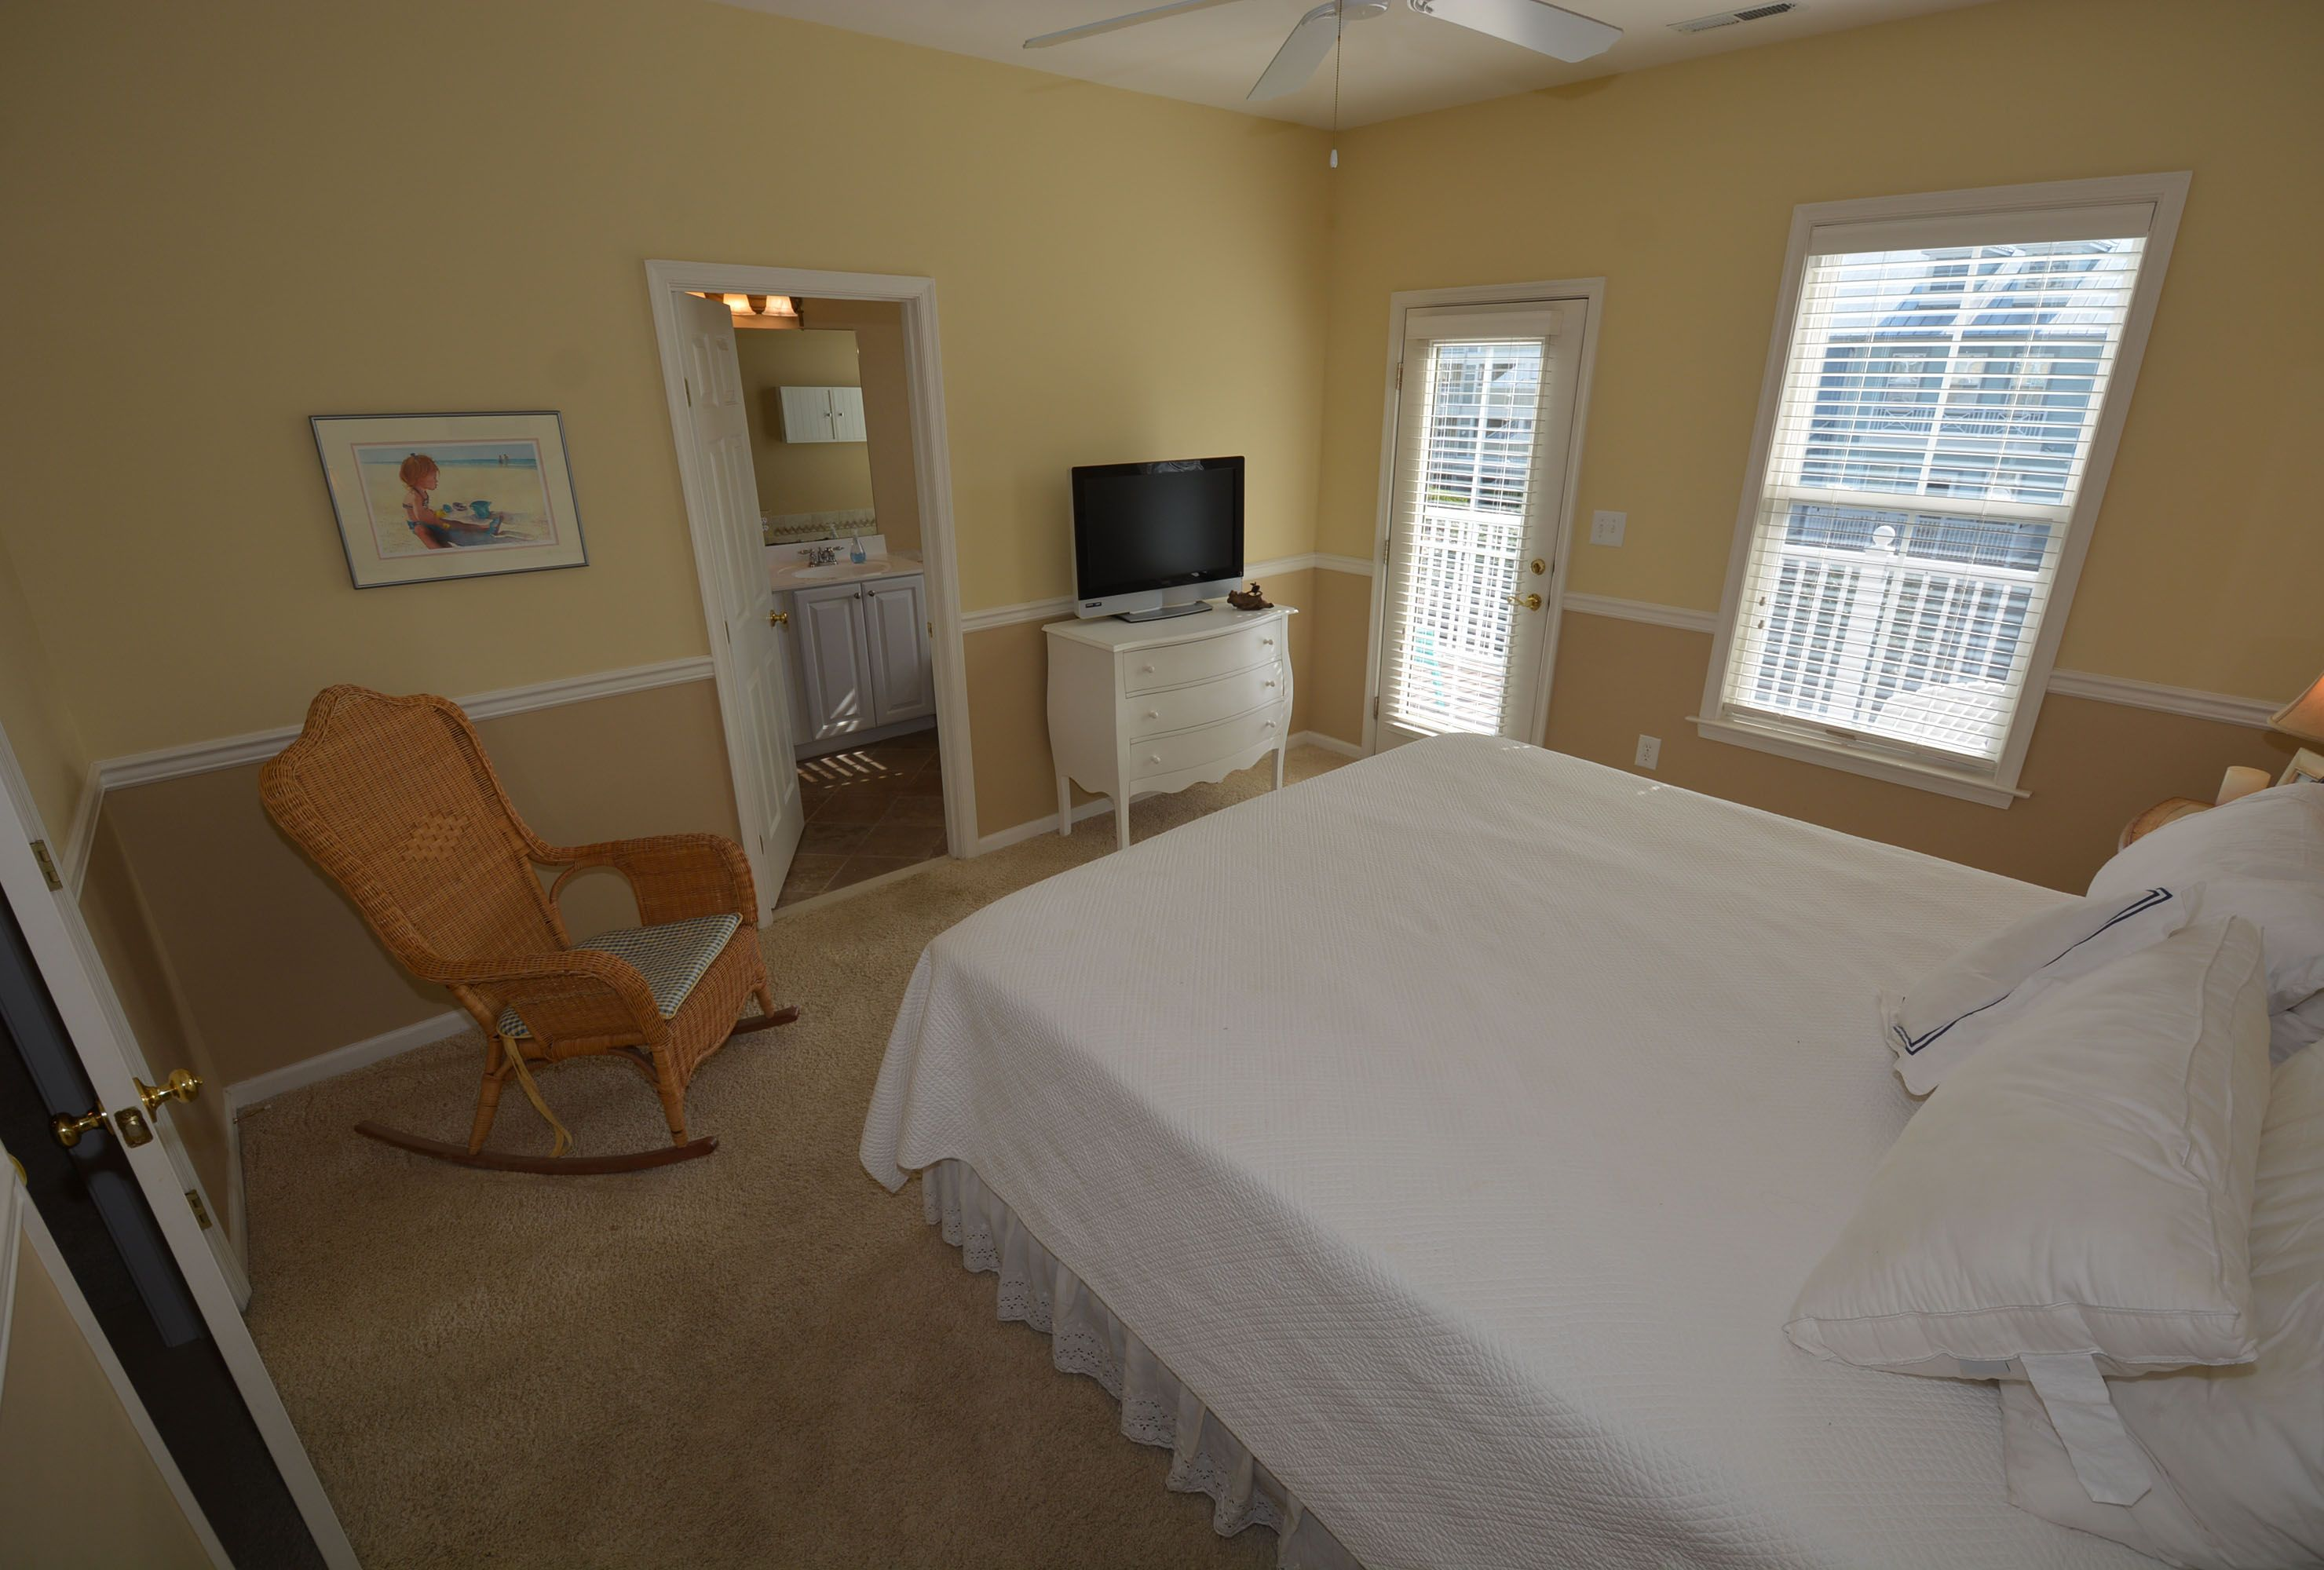 Bedroom featured in the Alexandria Classic By Covell Communities in Eastern Shore, MD